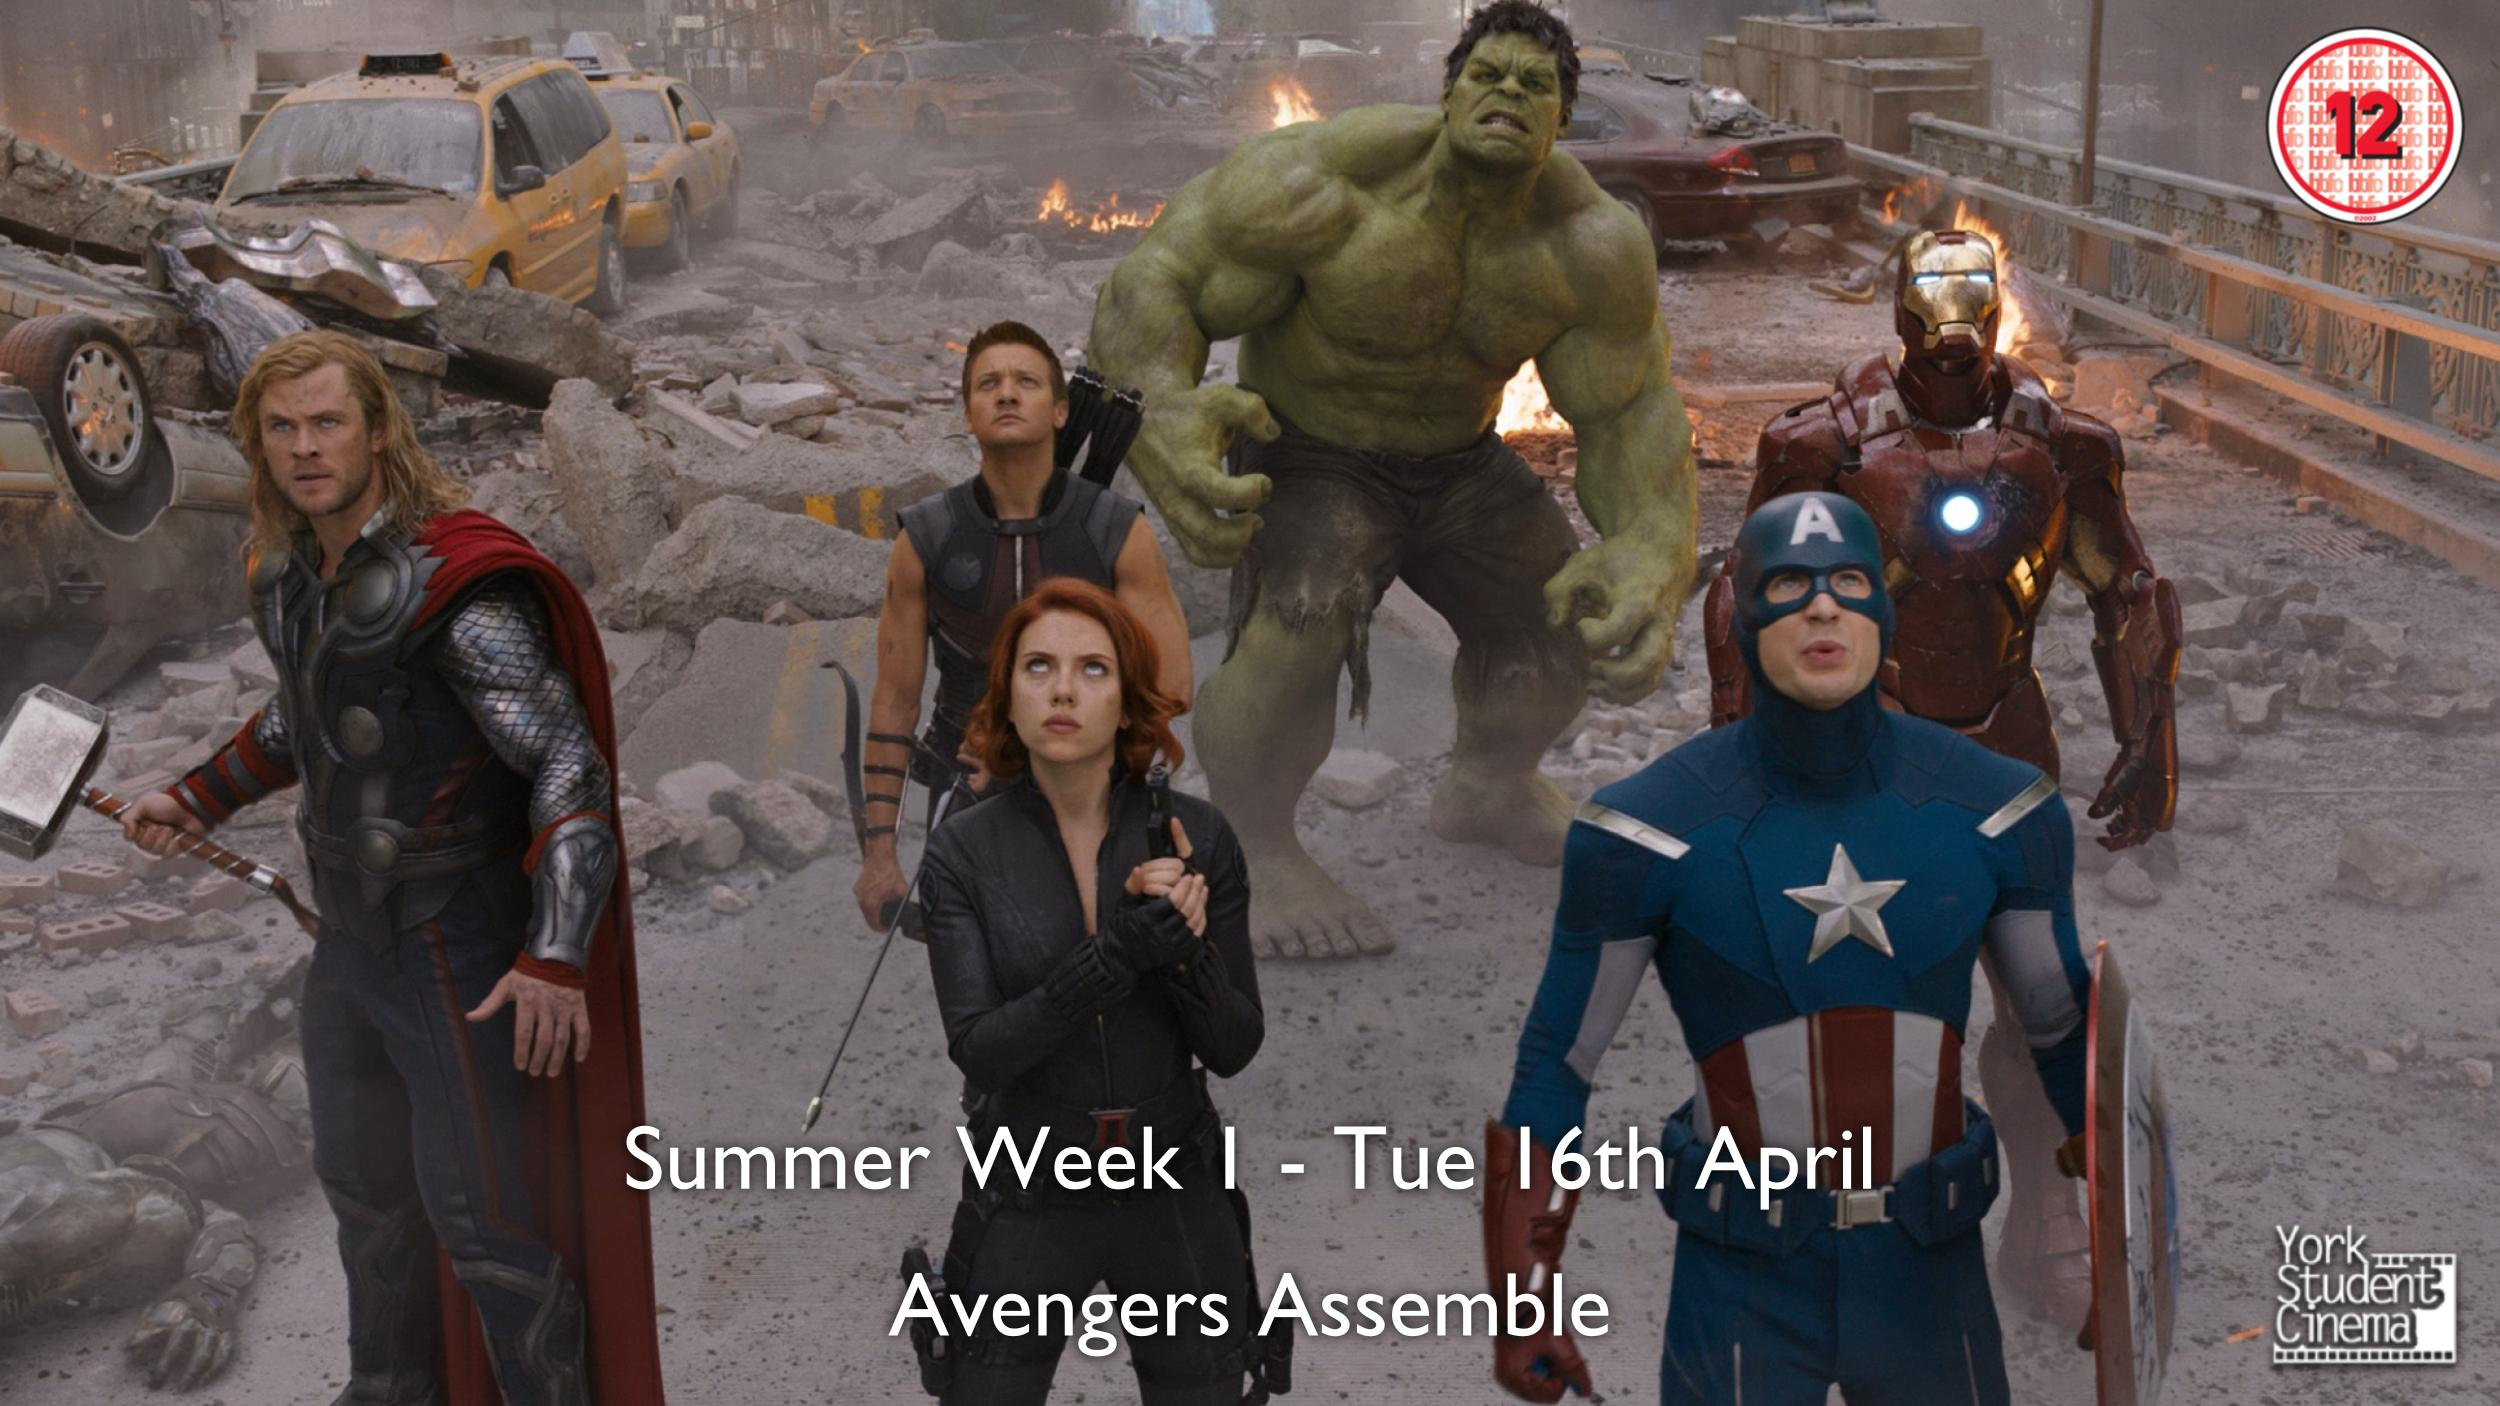 YSC Screening of Avengers Assemble